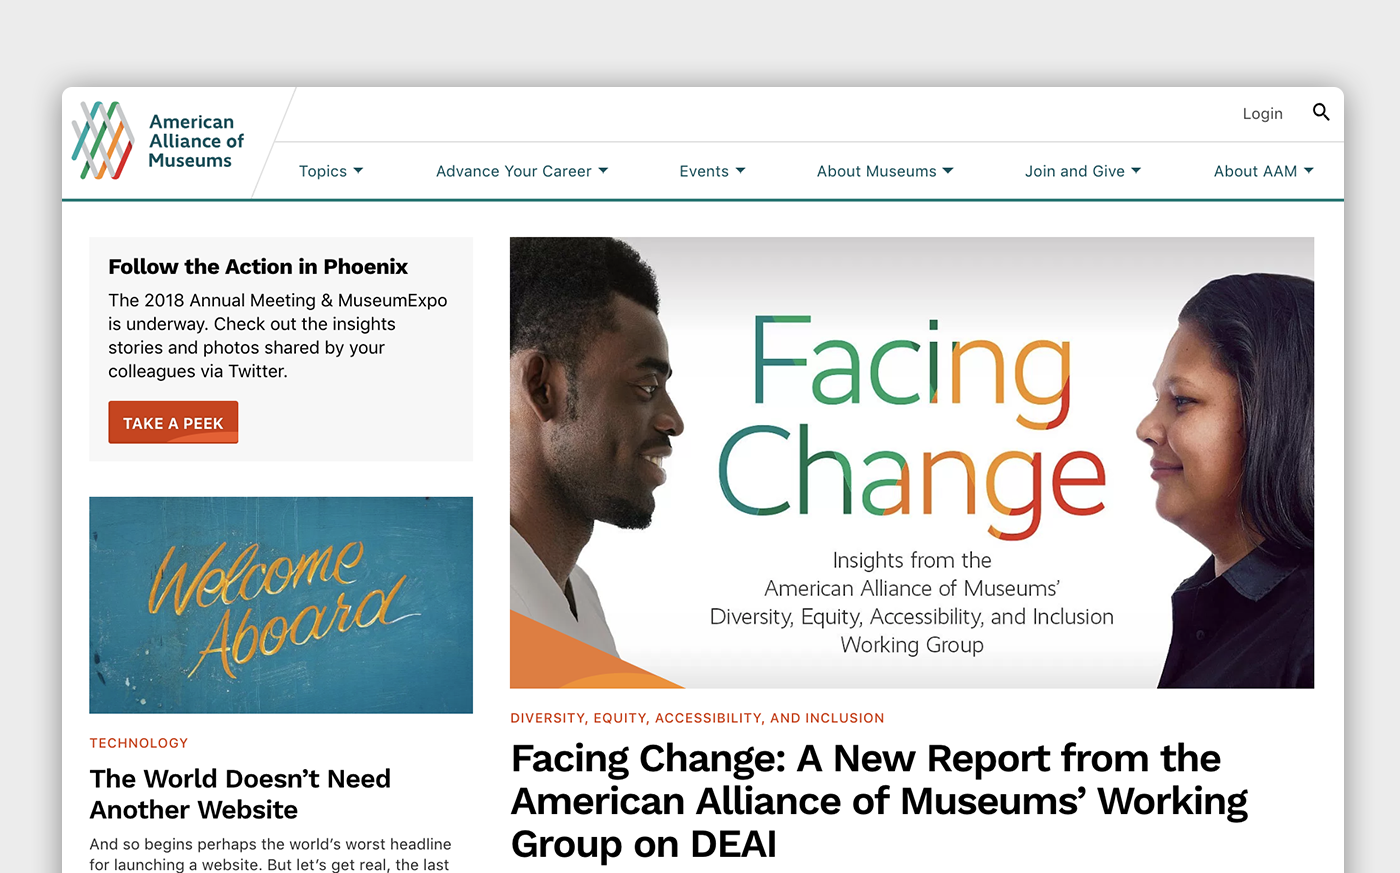 The main page of AAM with navigation, featured article, and additional content